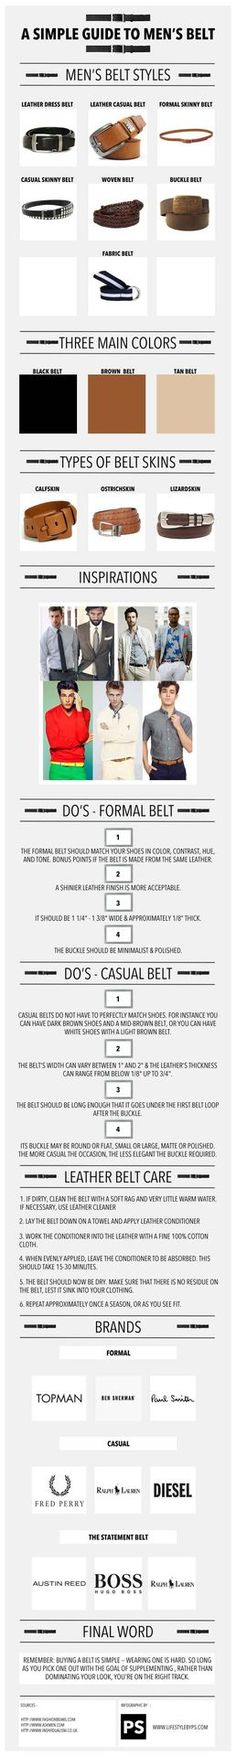 Guide to Mens belts